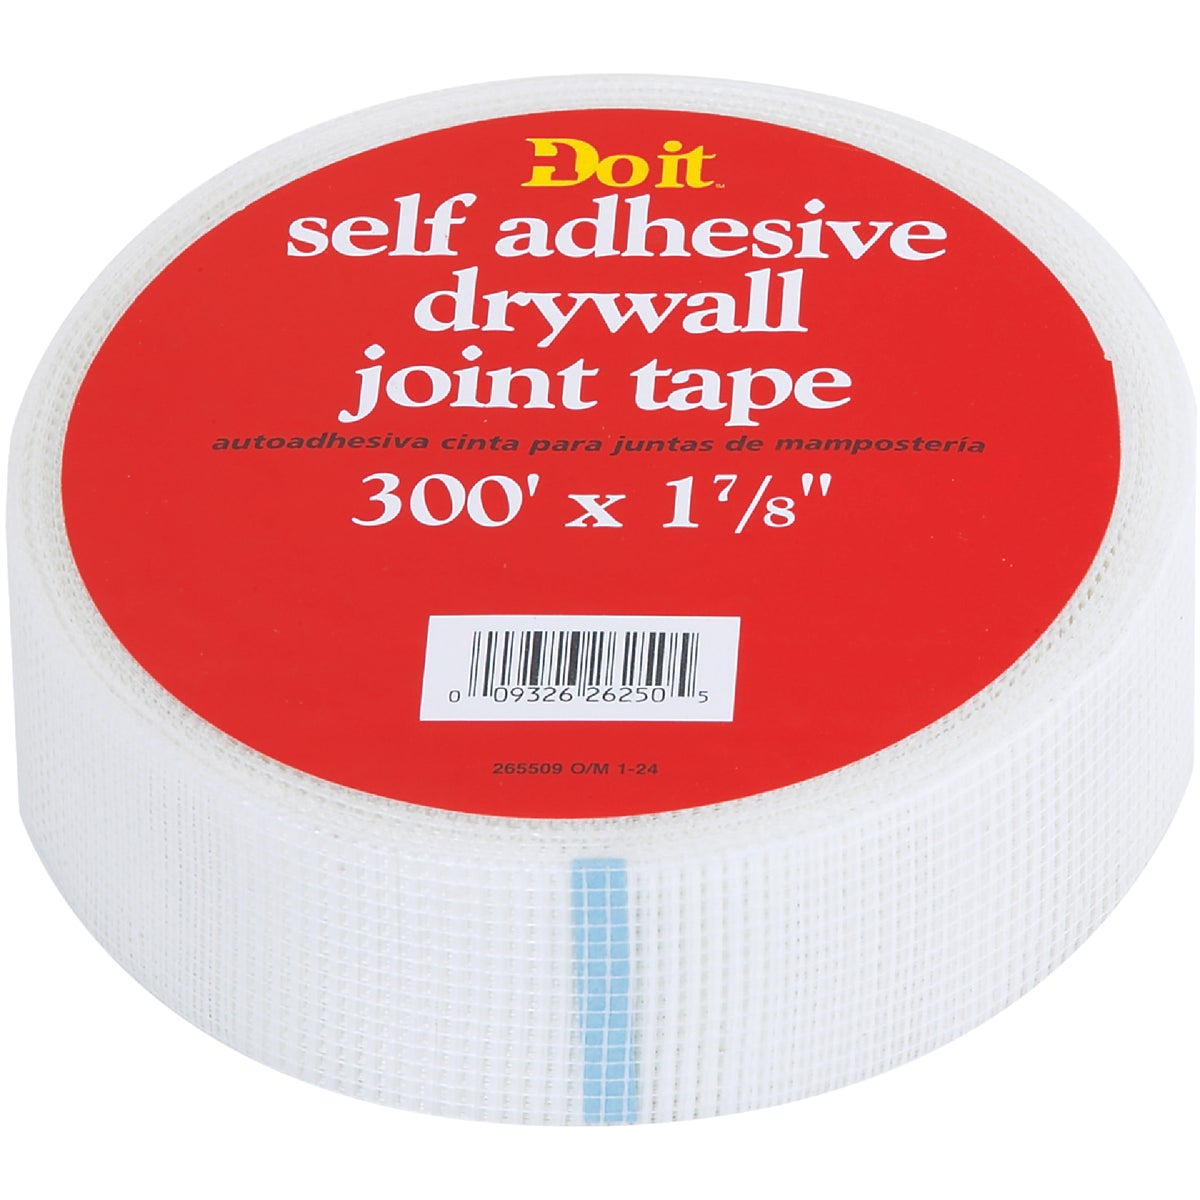 300'WHT FBGLS DRYWL TAPE - SA001 by Do it Best